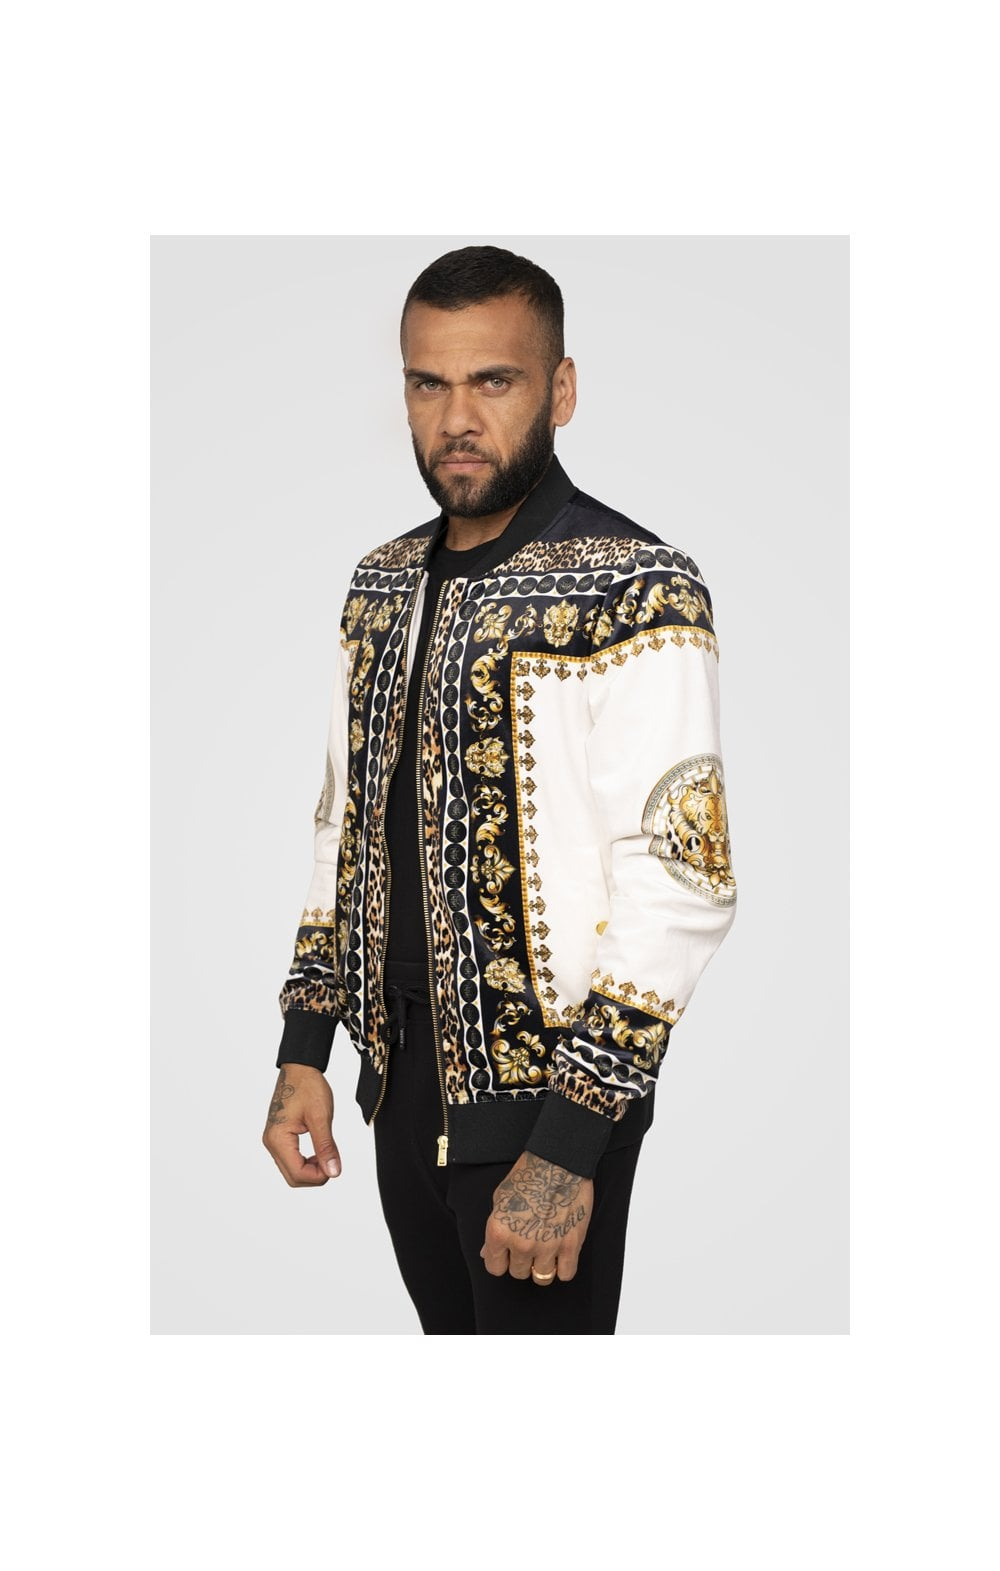 Load image into Gallery viewer, SikSilk x Dani Alves Bomber Jacket - Black, Off White & Gold